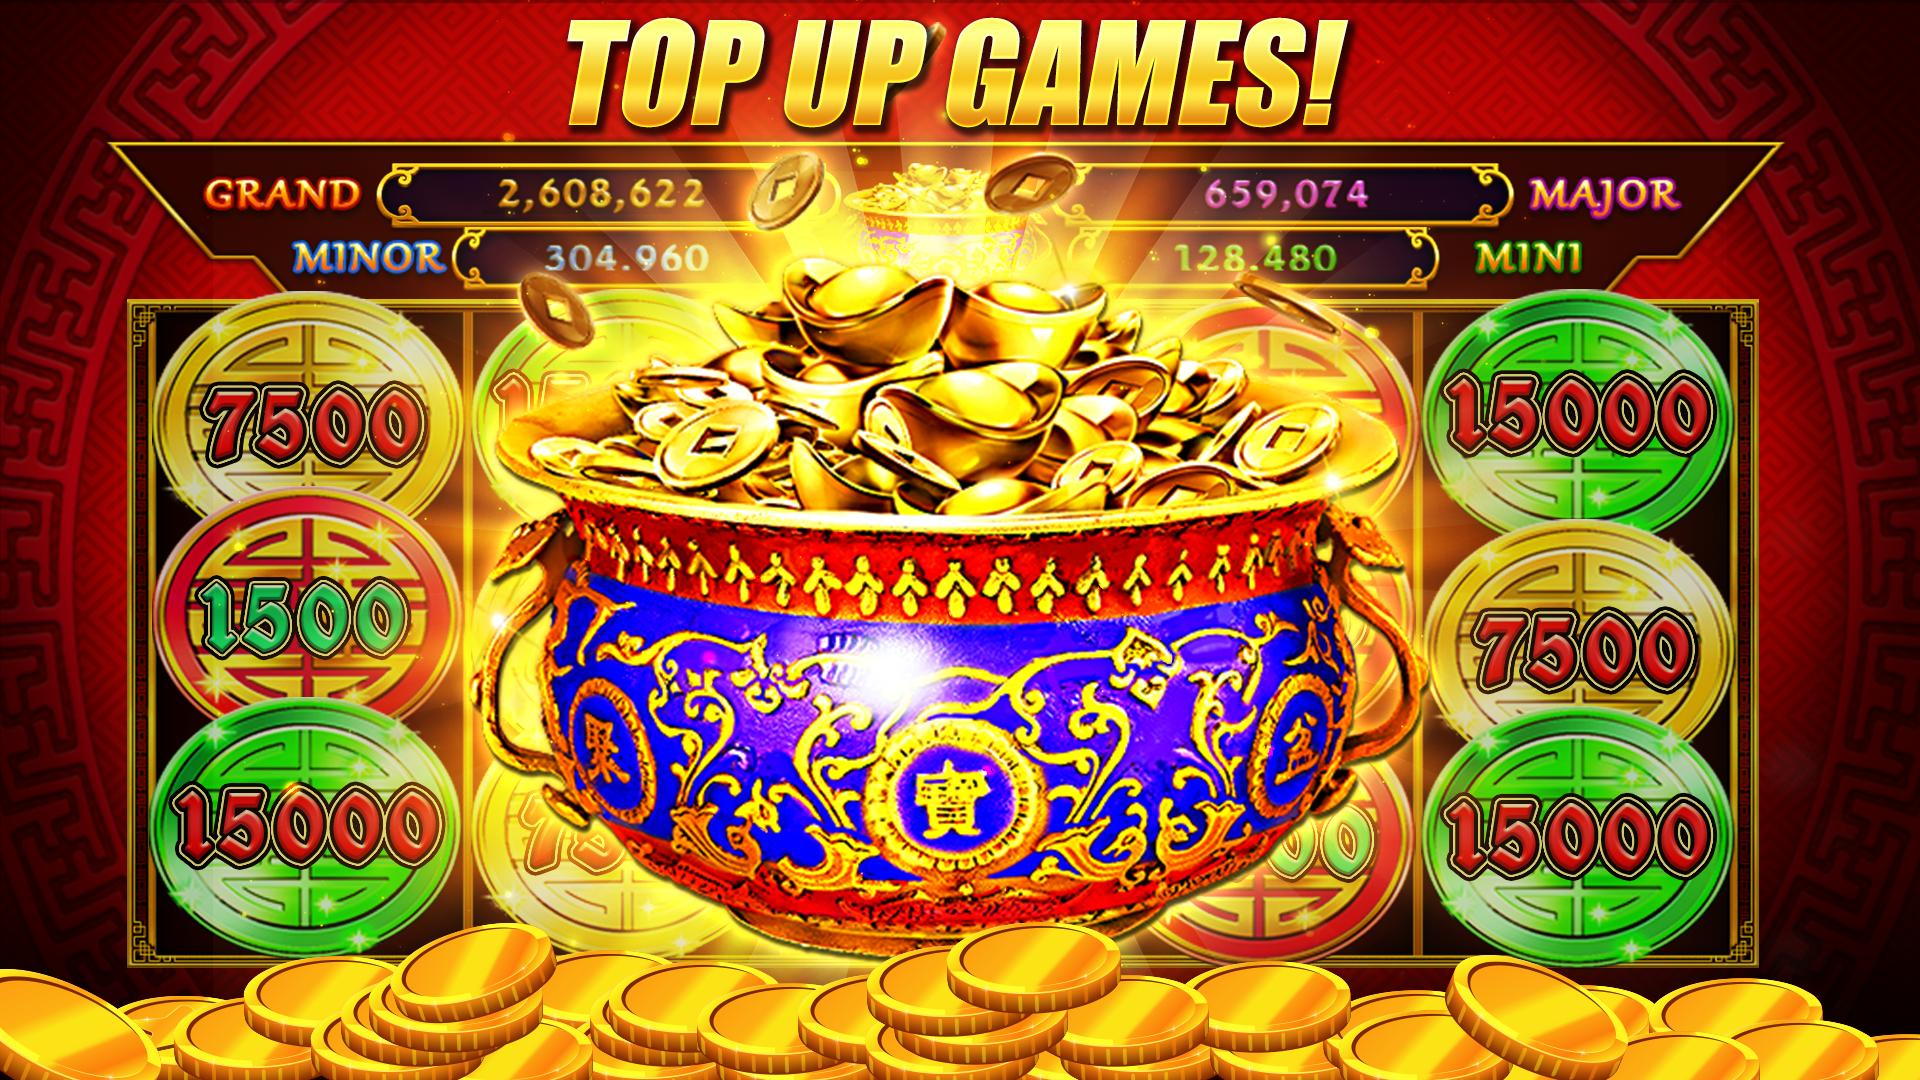 Grand Jackpot Slots Pop Vegas Casino Free Games 1.0.44 Screenshot 2